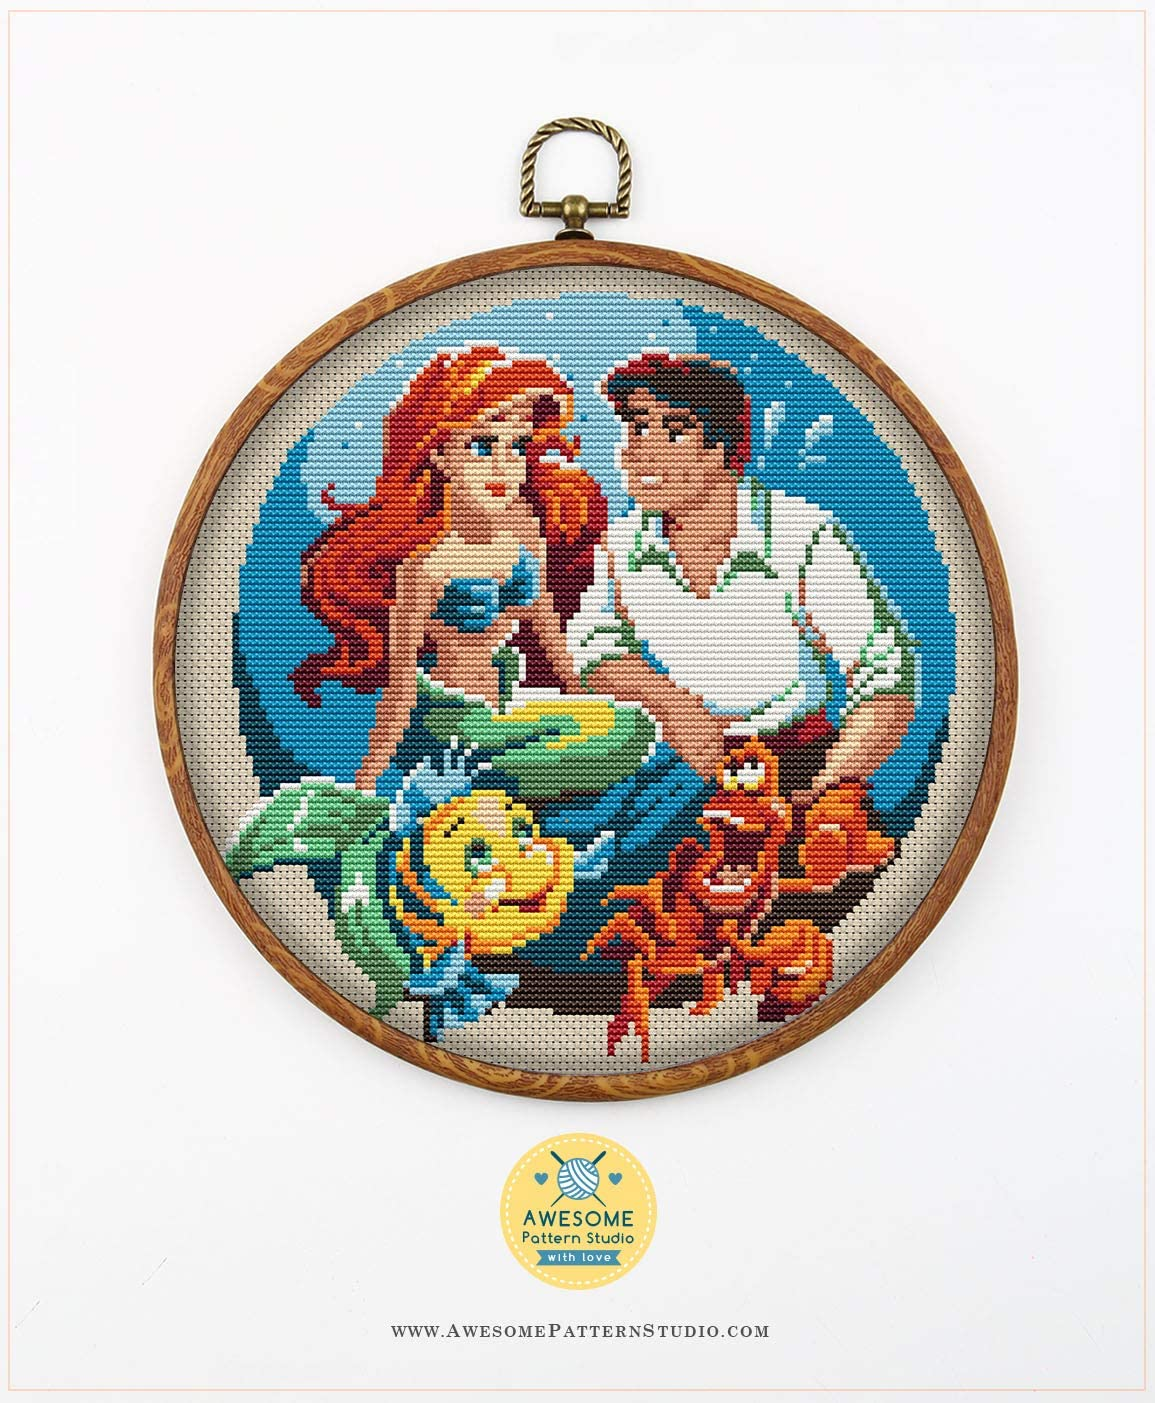 Needles Threads Fabrick and 4 Printed Color Schemes Inside Embroidery Pattern Kit The Little Mermaid K043 Counted Cross Stitch KIT#2